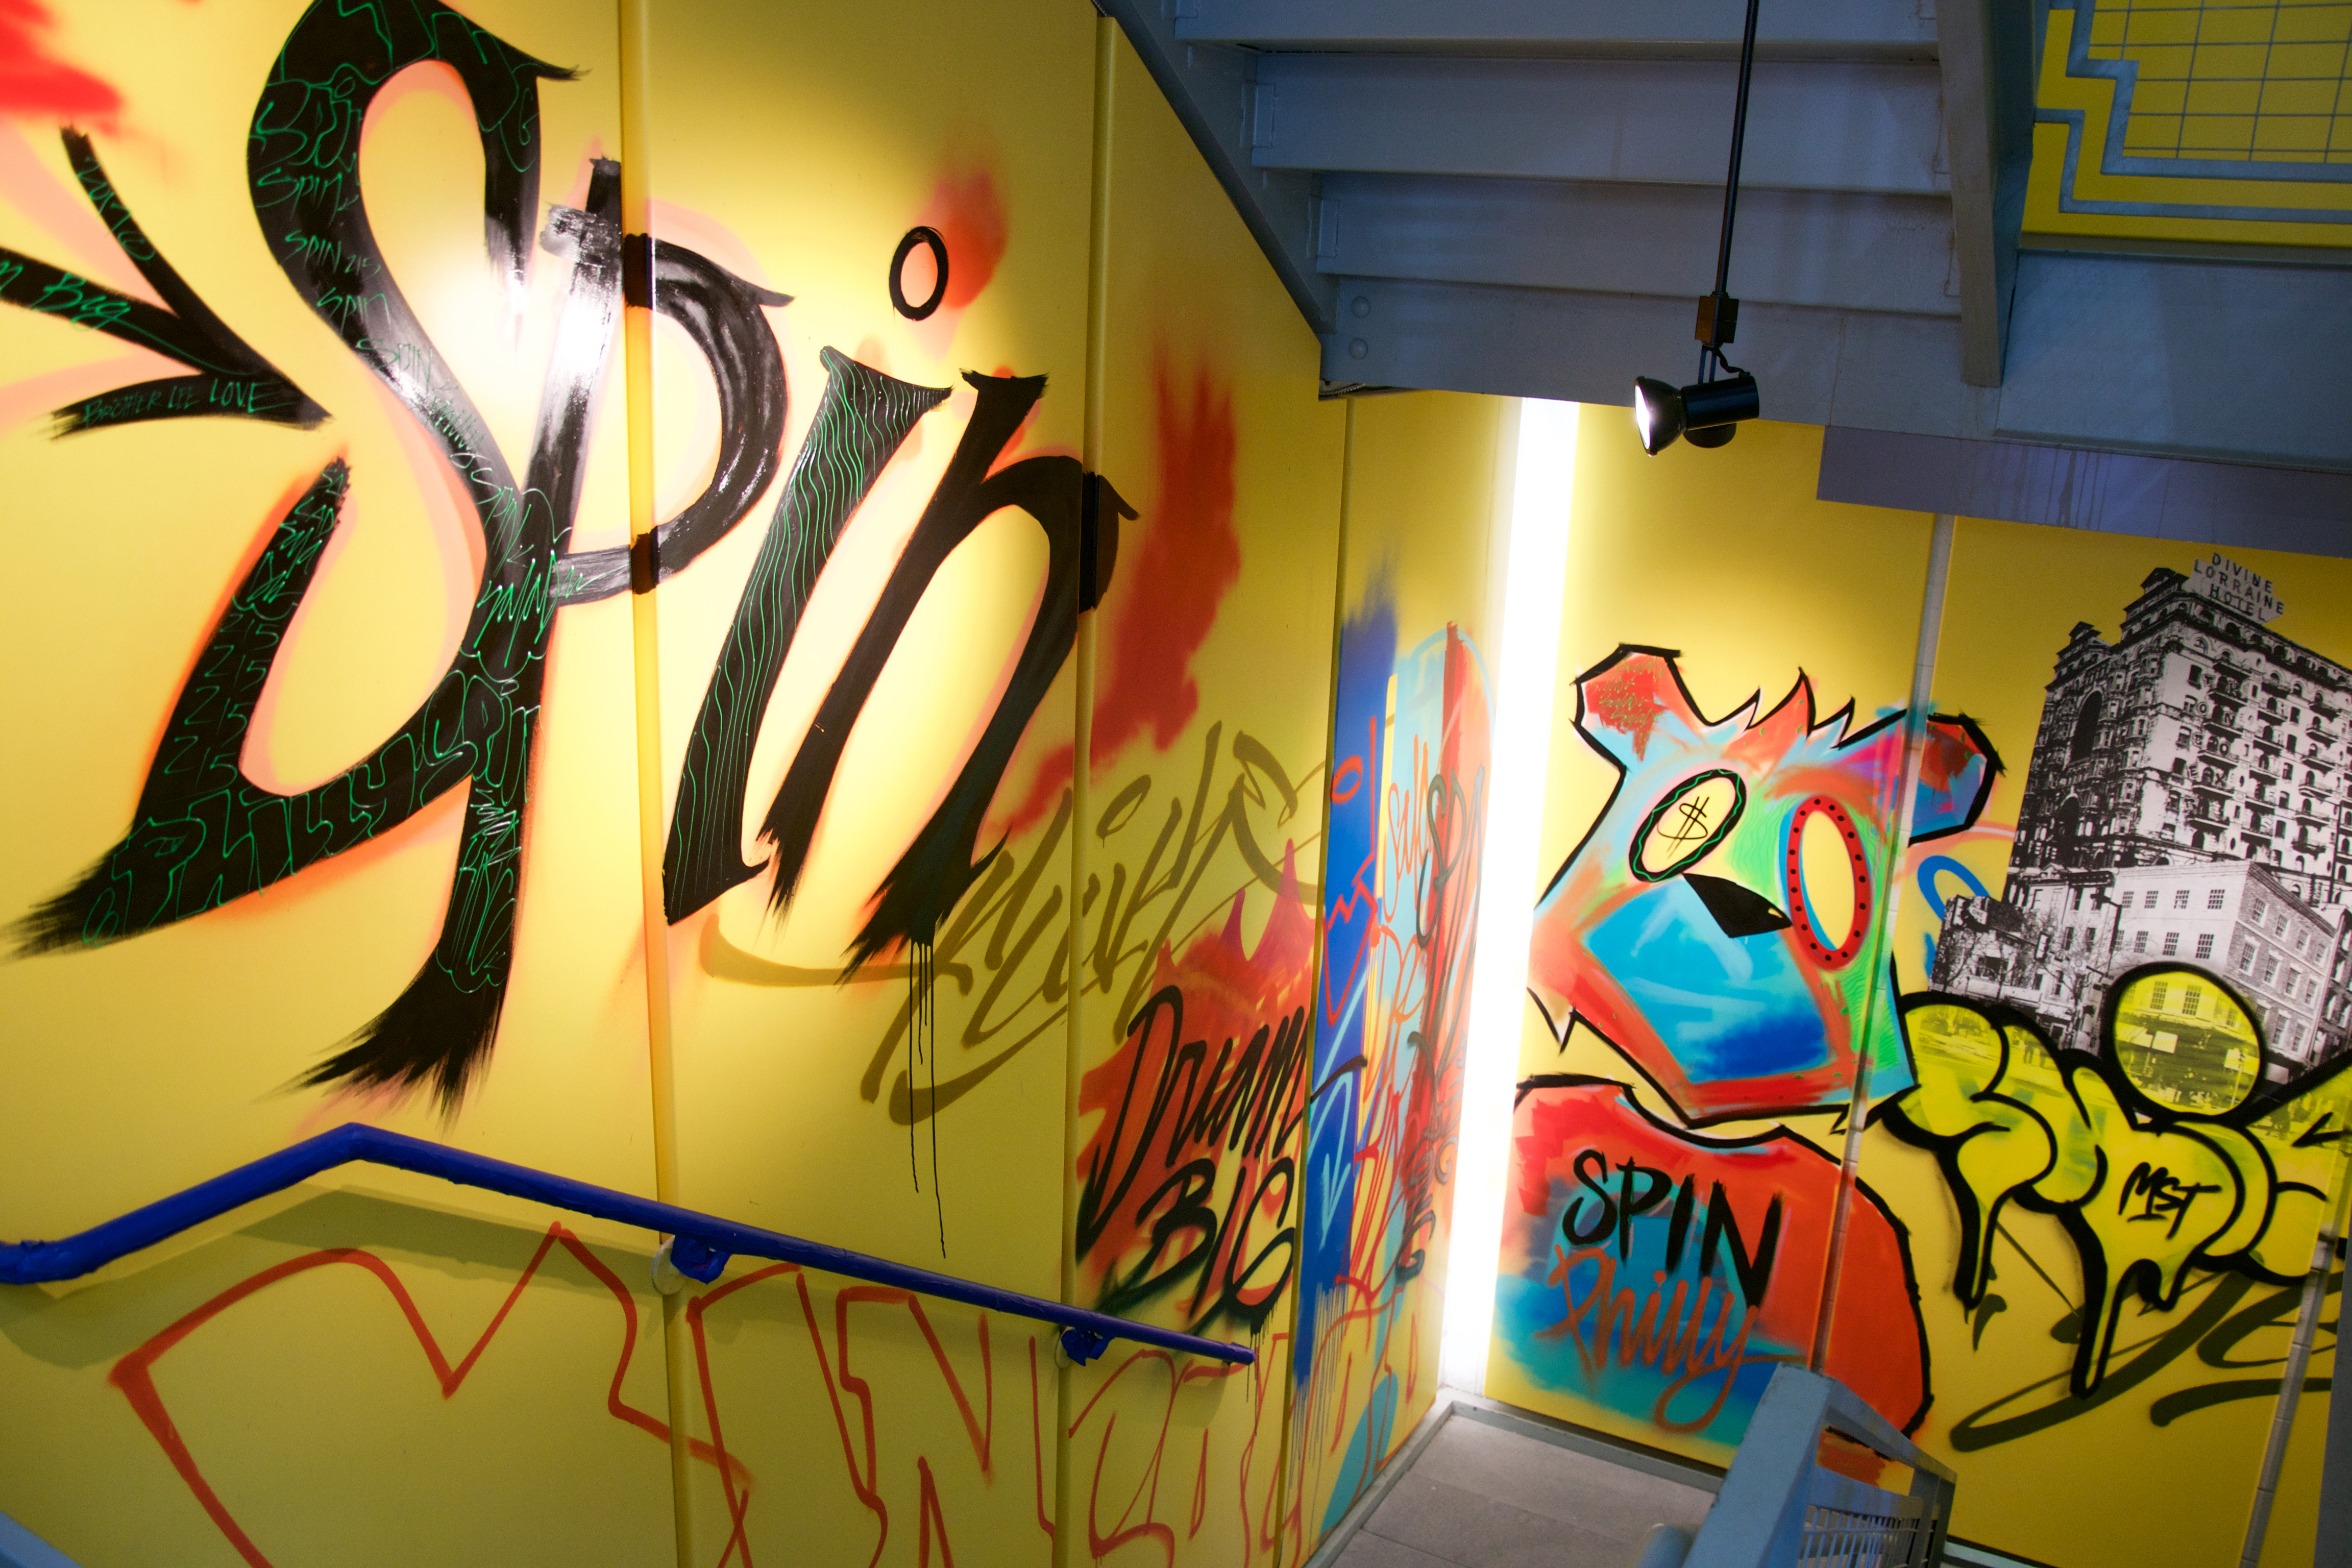 Spin, a 12,000-Square-Foot Ping Pong Bar, Bounces Into Philly ...